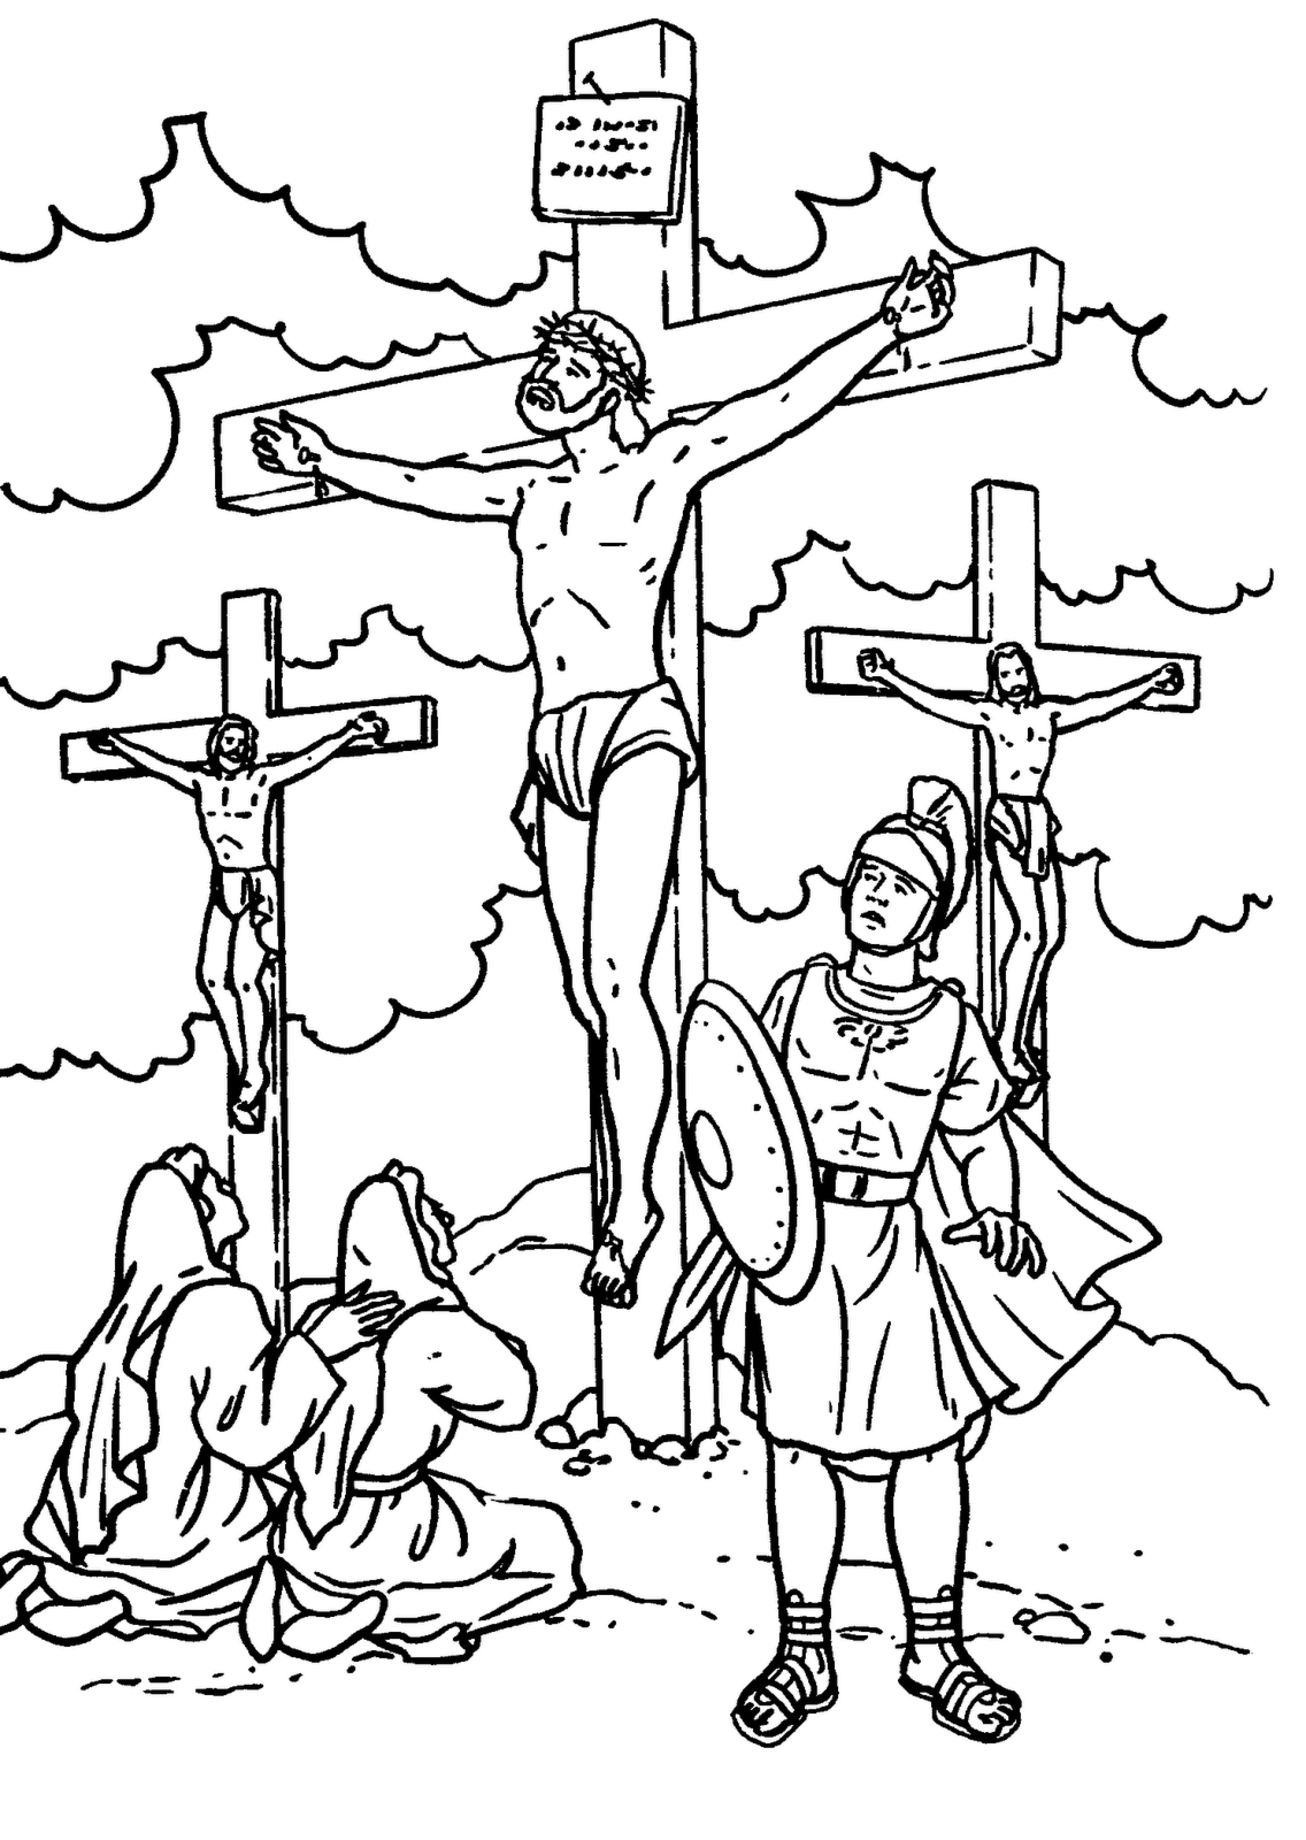 bible story coloring pages 25 inspiration photo of bible story coloring pages coloring story pages bible